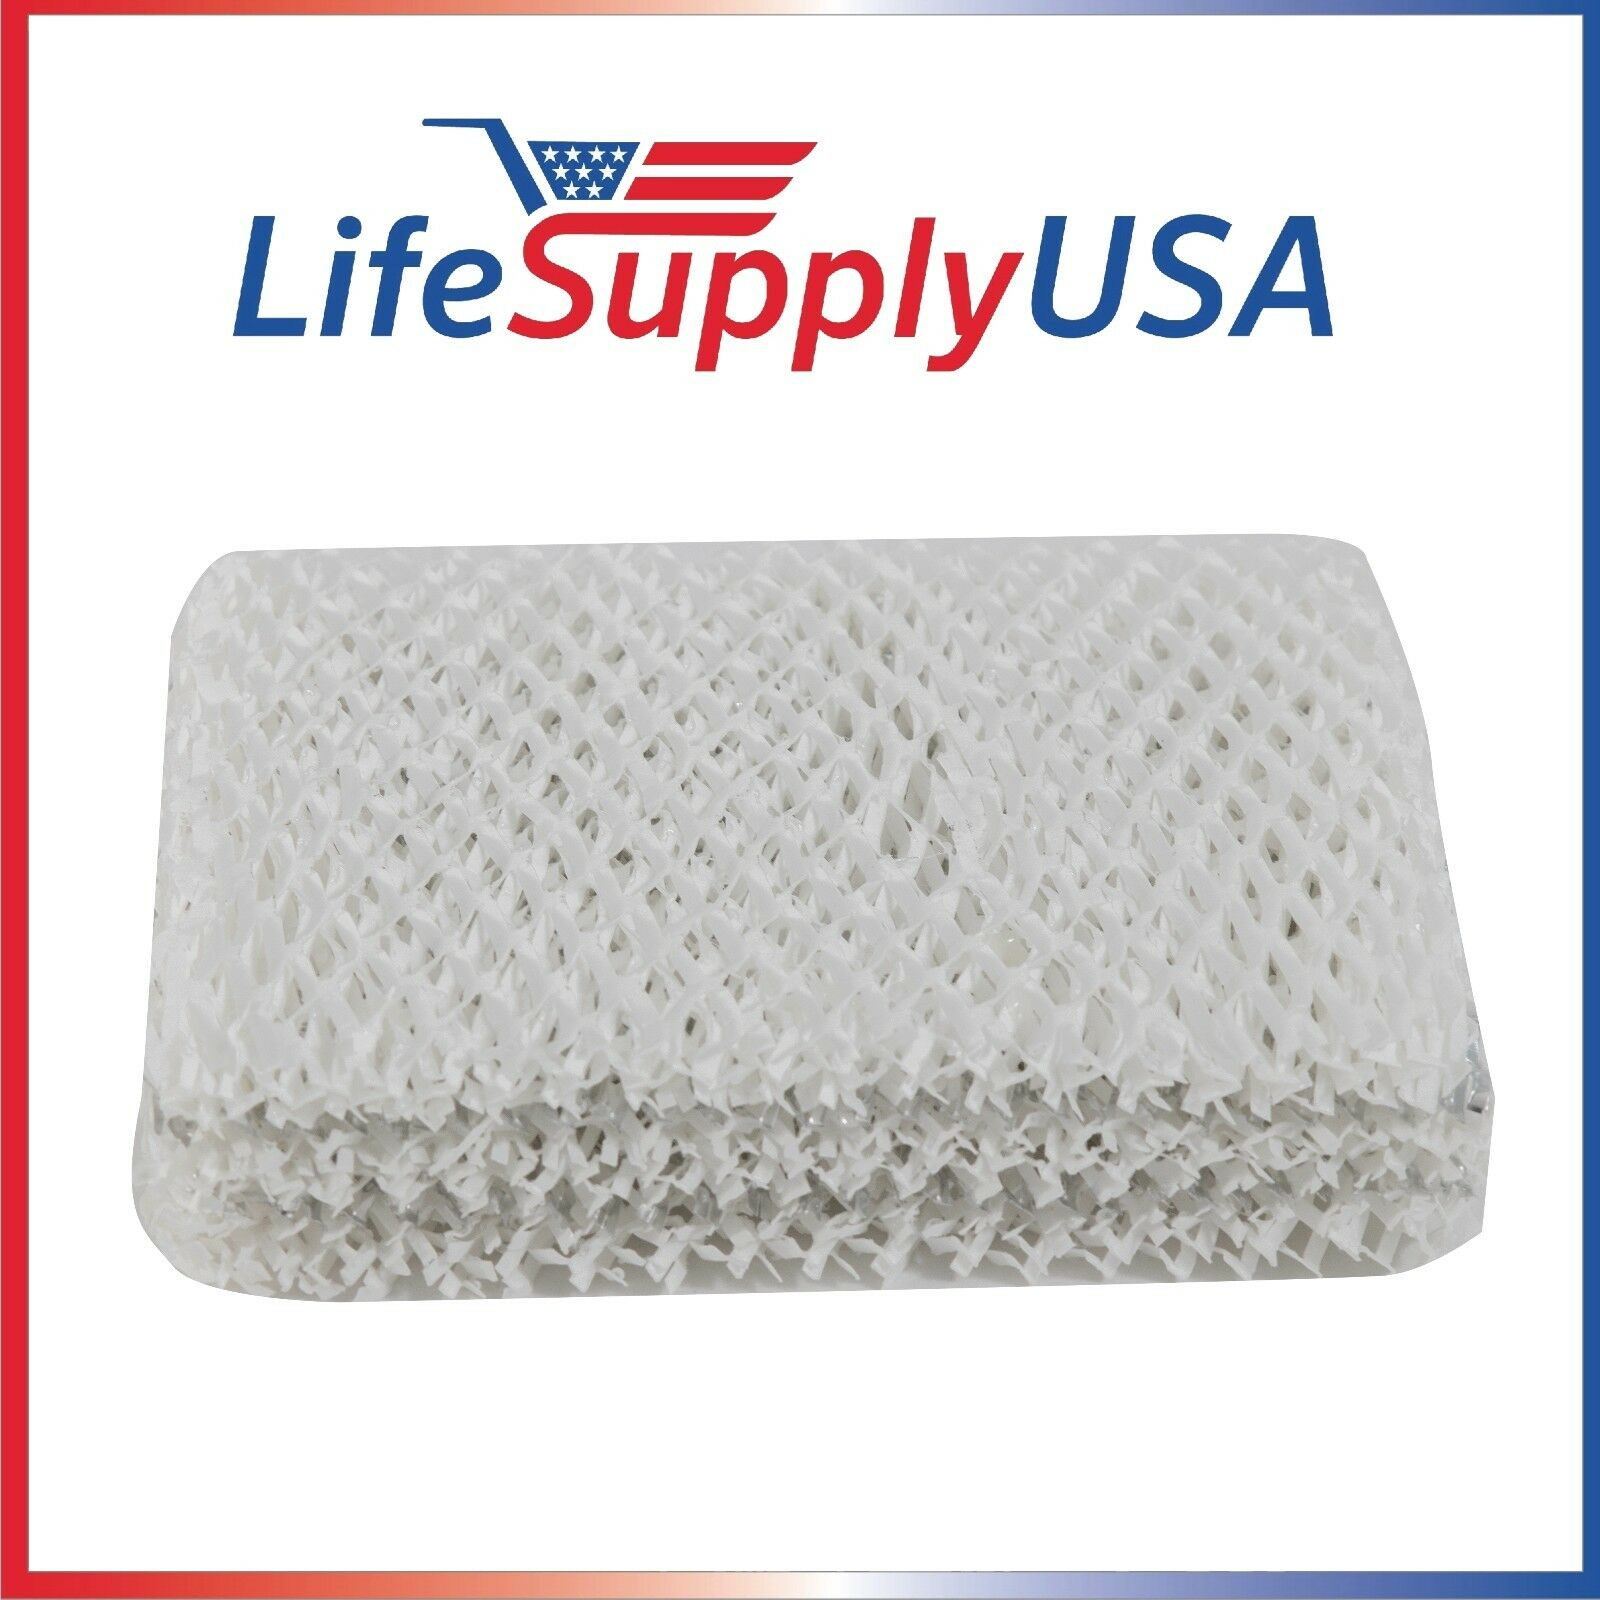 Replacement Wick Filter fits Hunter 31941 31952 Perma Wick by LifeSupplyUSA